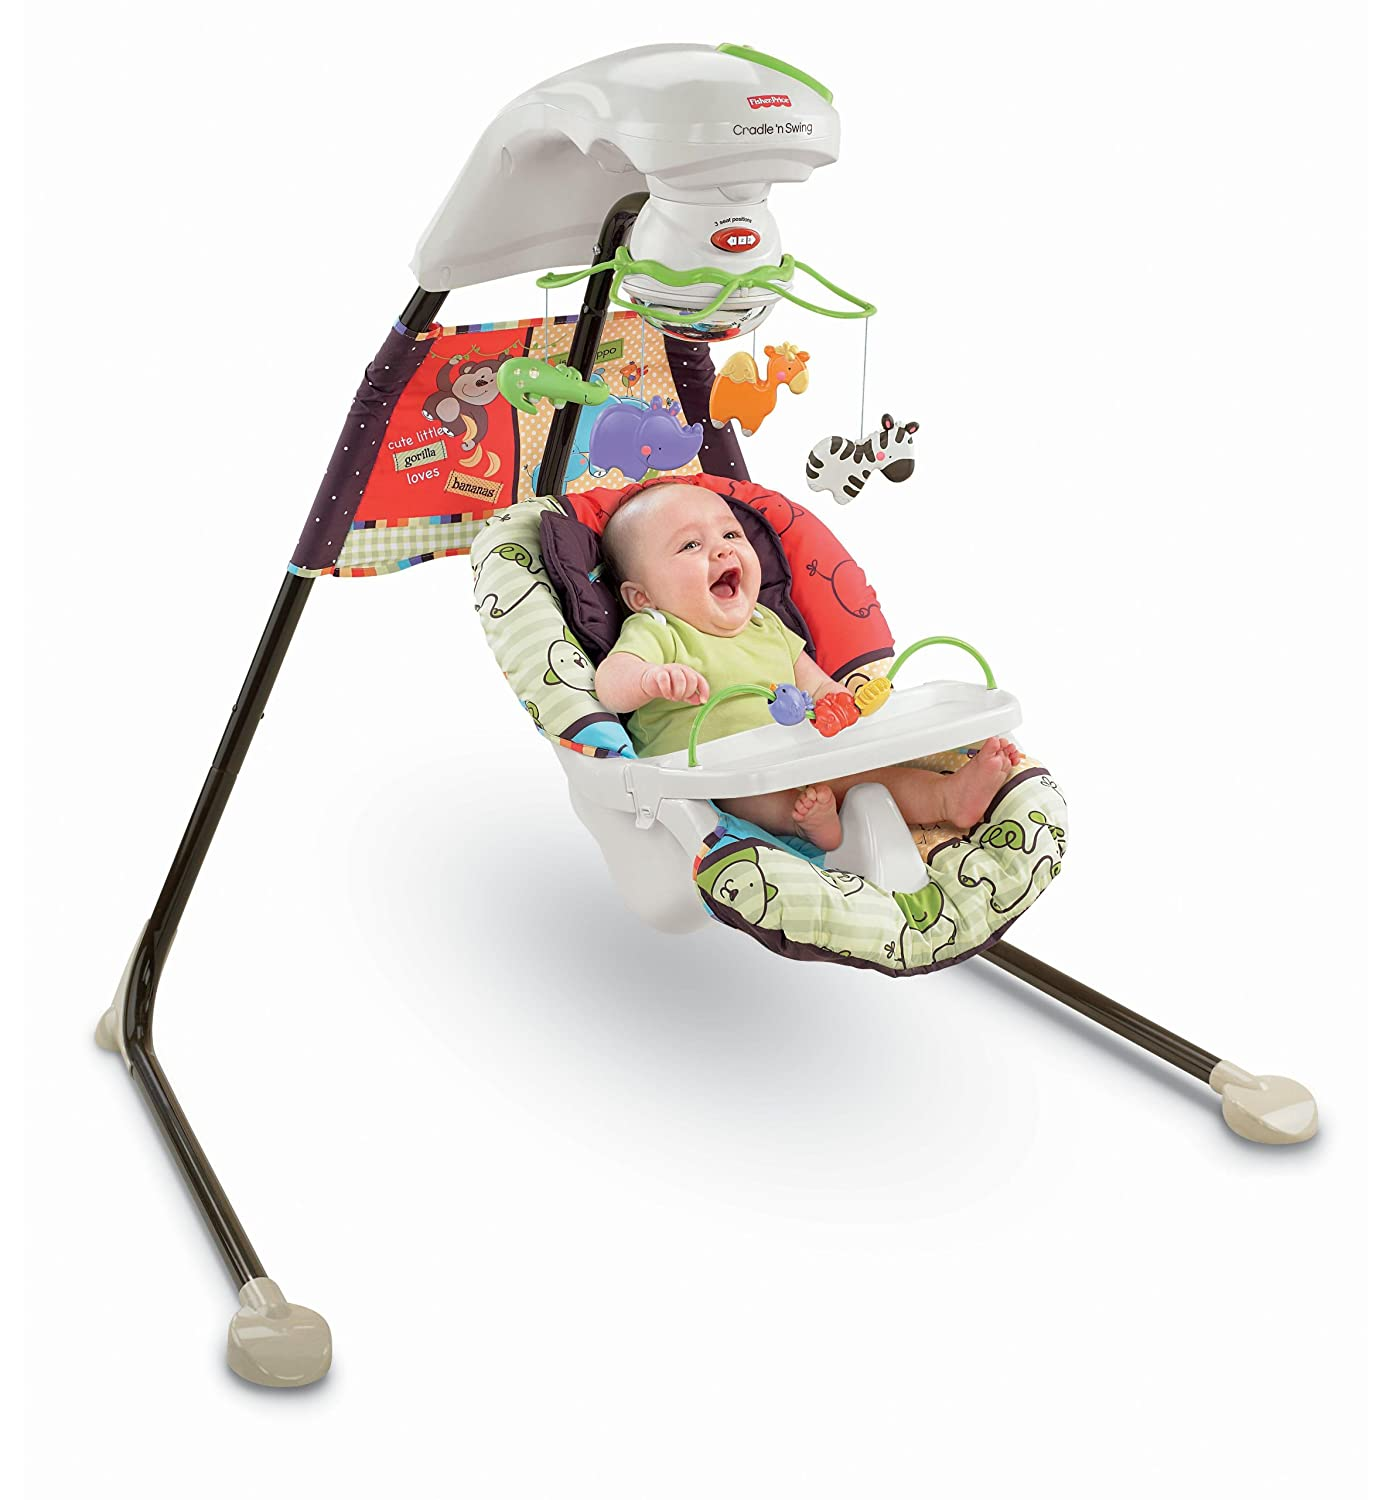 Amazon.com : Fisher-Price Cradle 'N Swing, Luv U Zoo (Discontinued by  Manufacturer) : Stationary Baby Swings : Baby